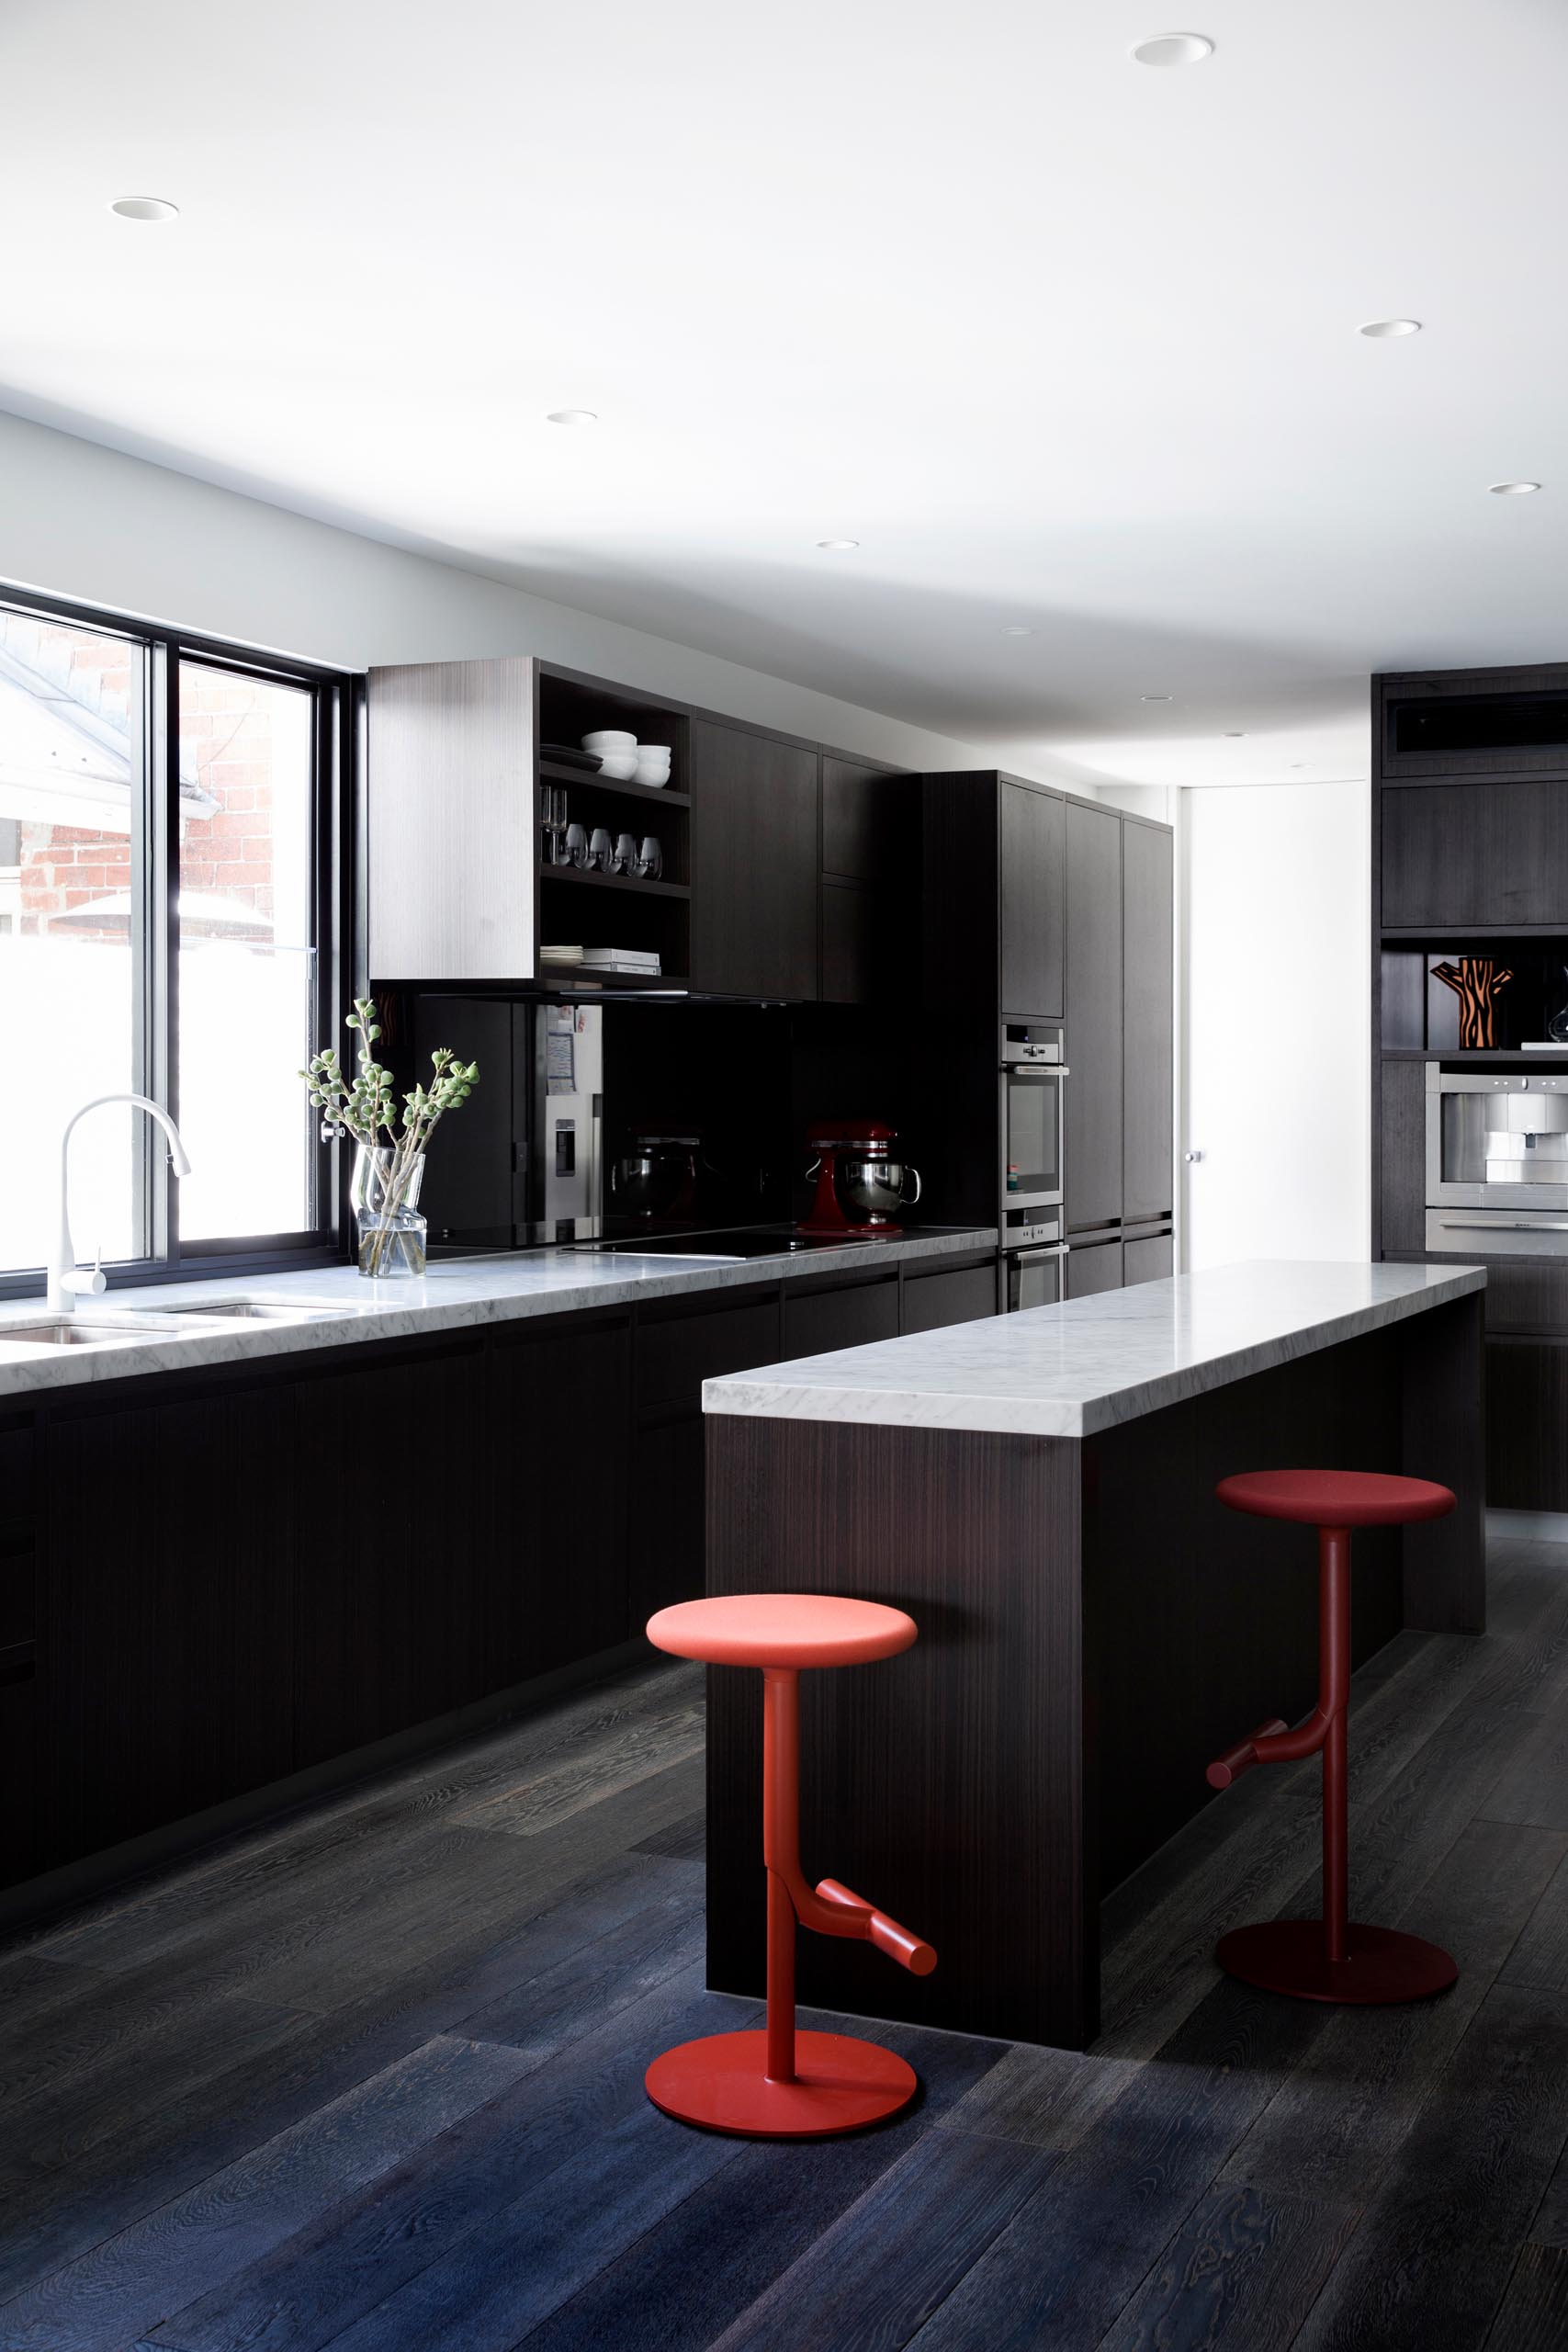 A modern kitchen with dark wood cabinets and light gray marble countertops.